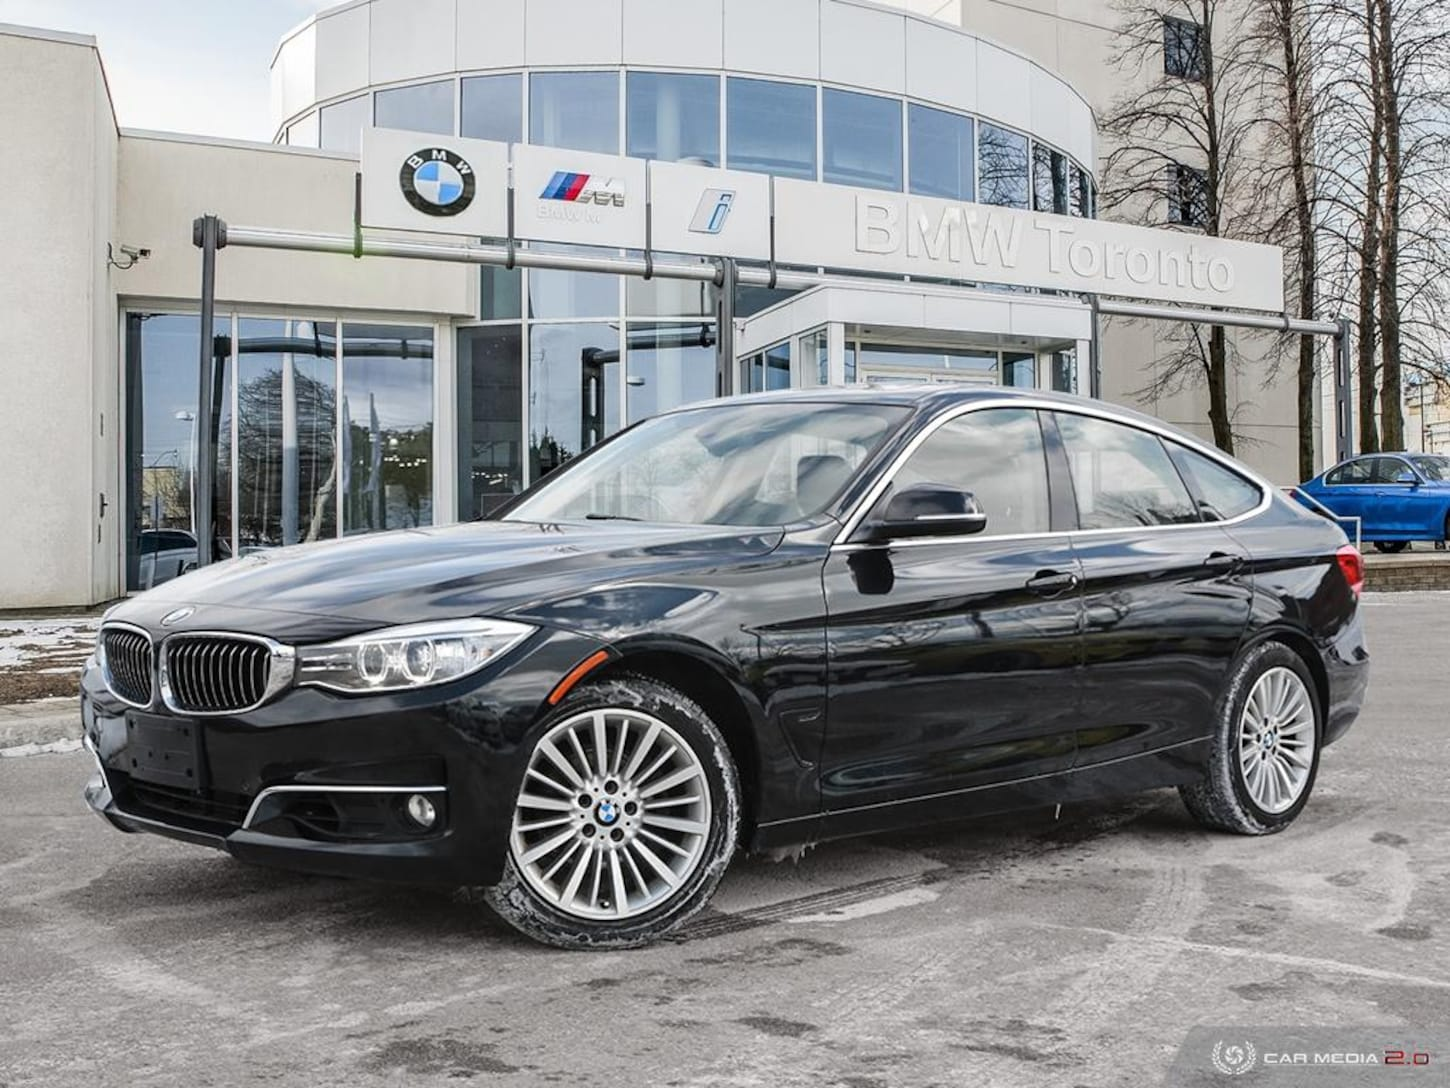 2016 BMW 328i Xdrive Gran Turismo W/ Nav! Financing Available!